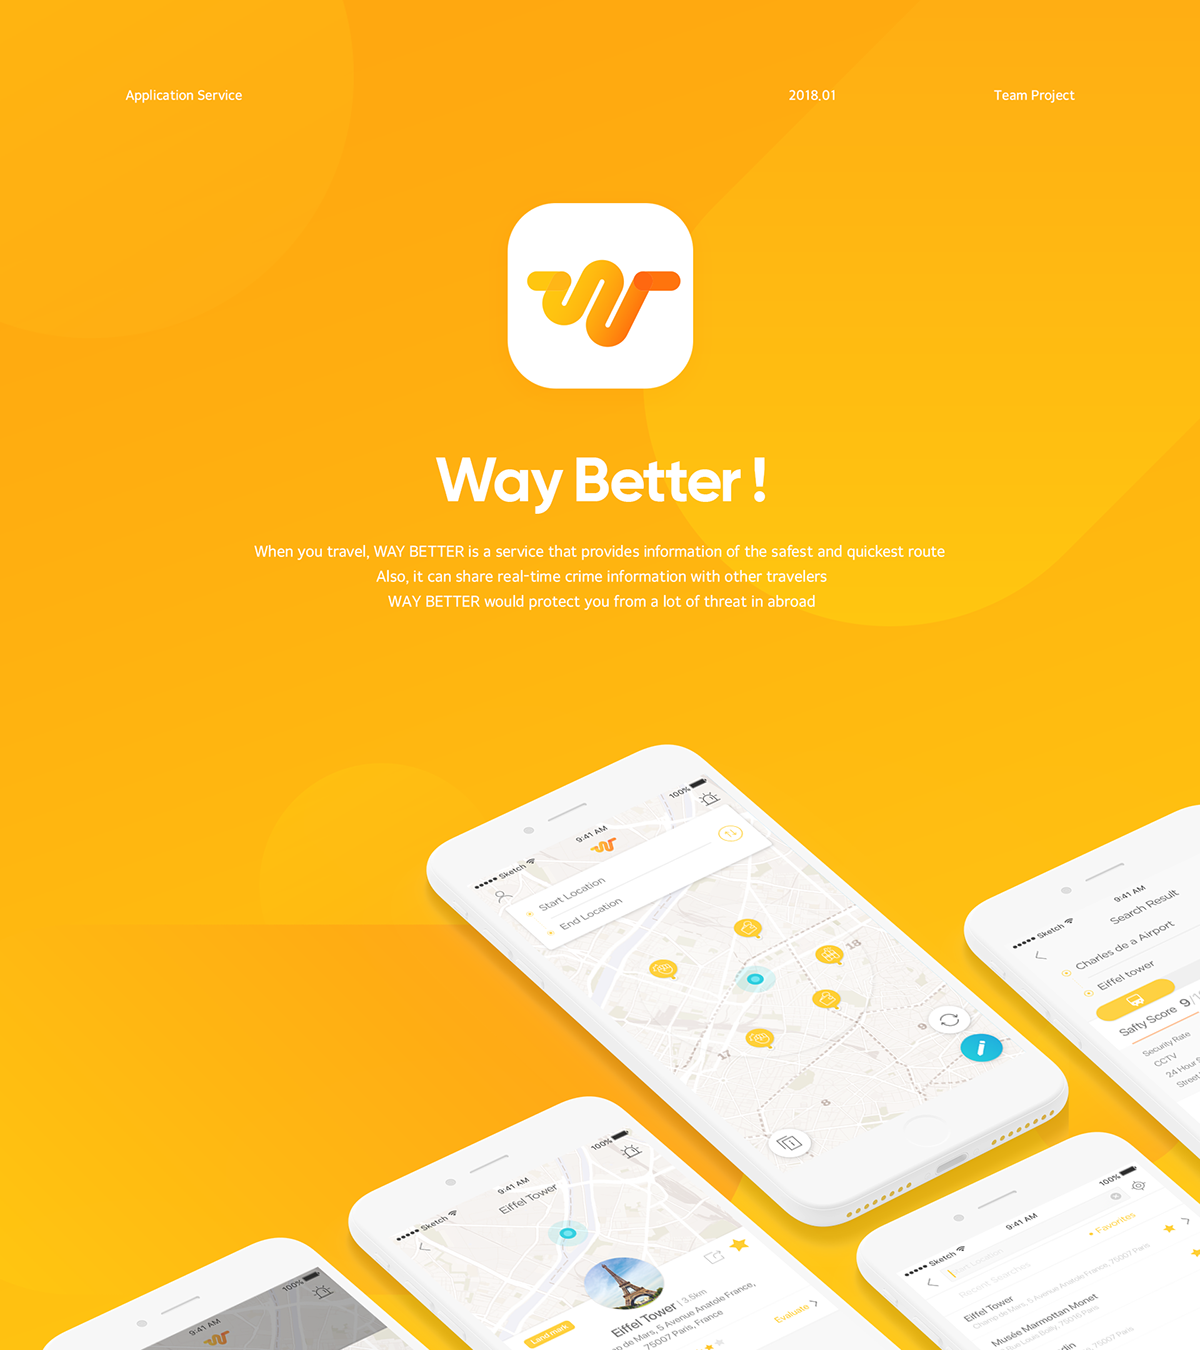 Way Better! - Find the Safe Way App Service on Student Show